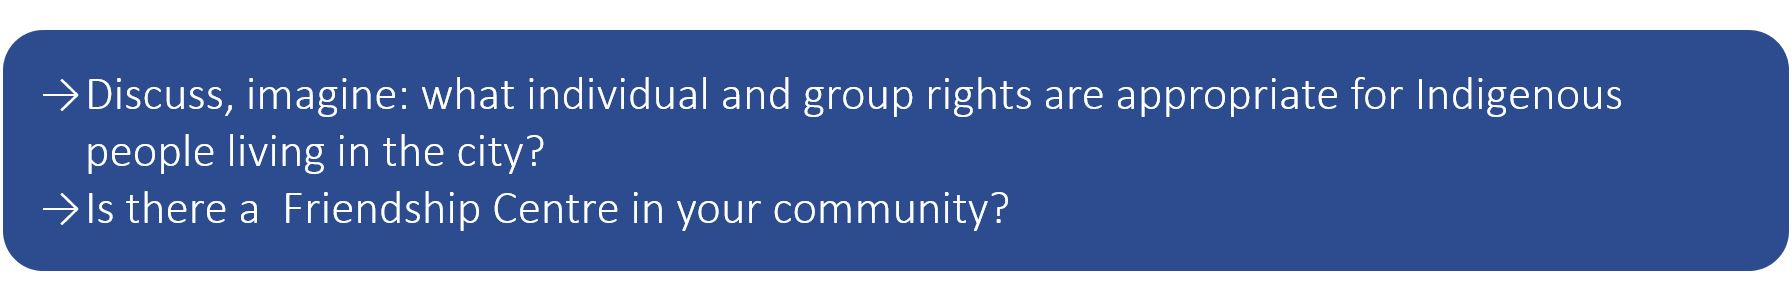 Discuss, imagine: what individual and group rights are appropriate for Indigenous people living in the city?